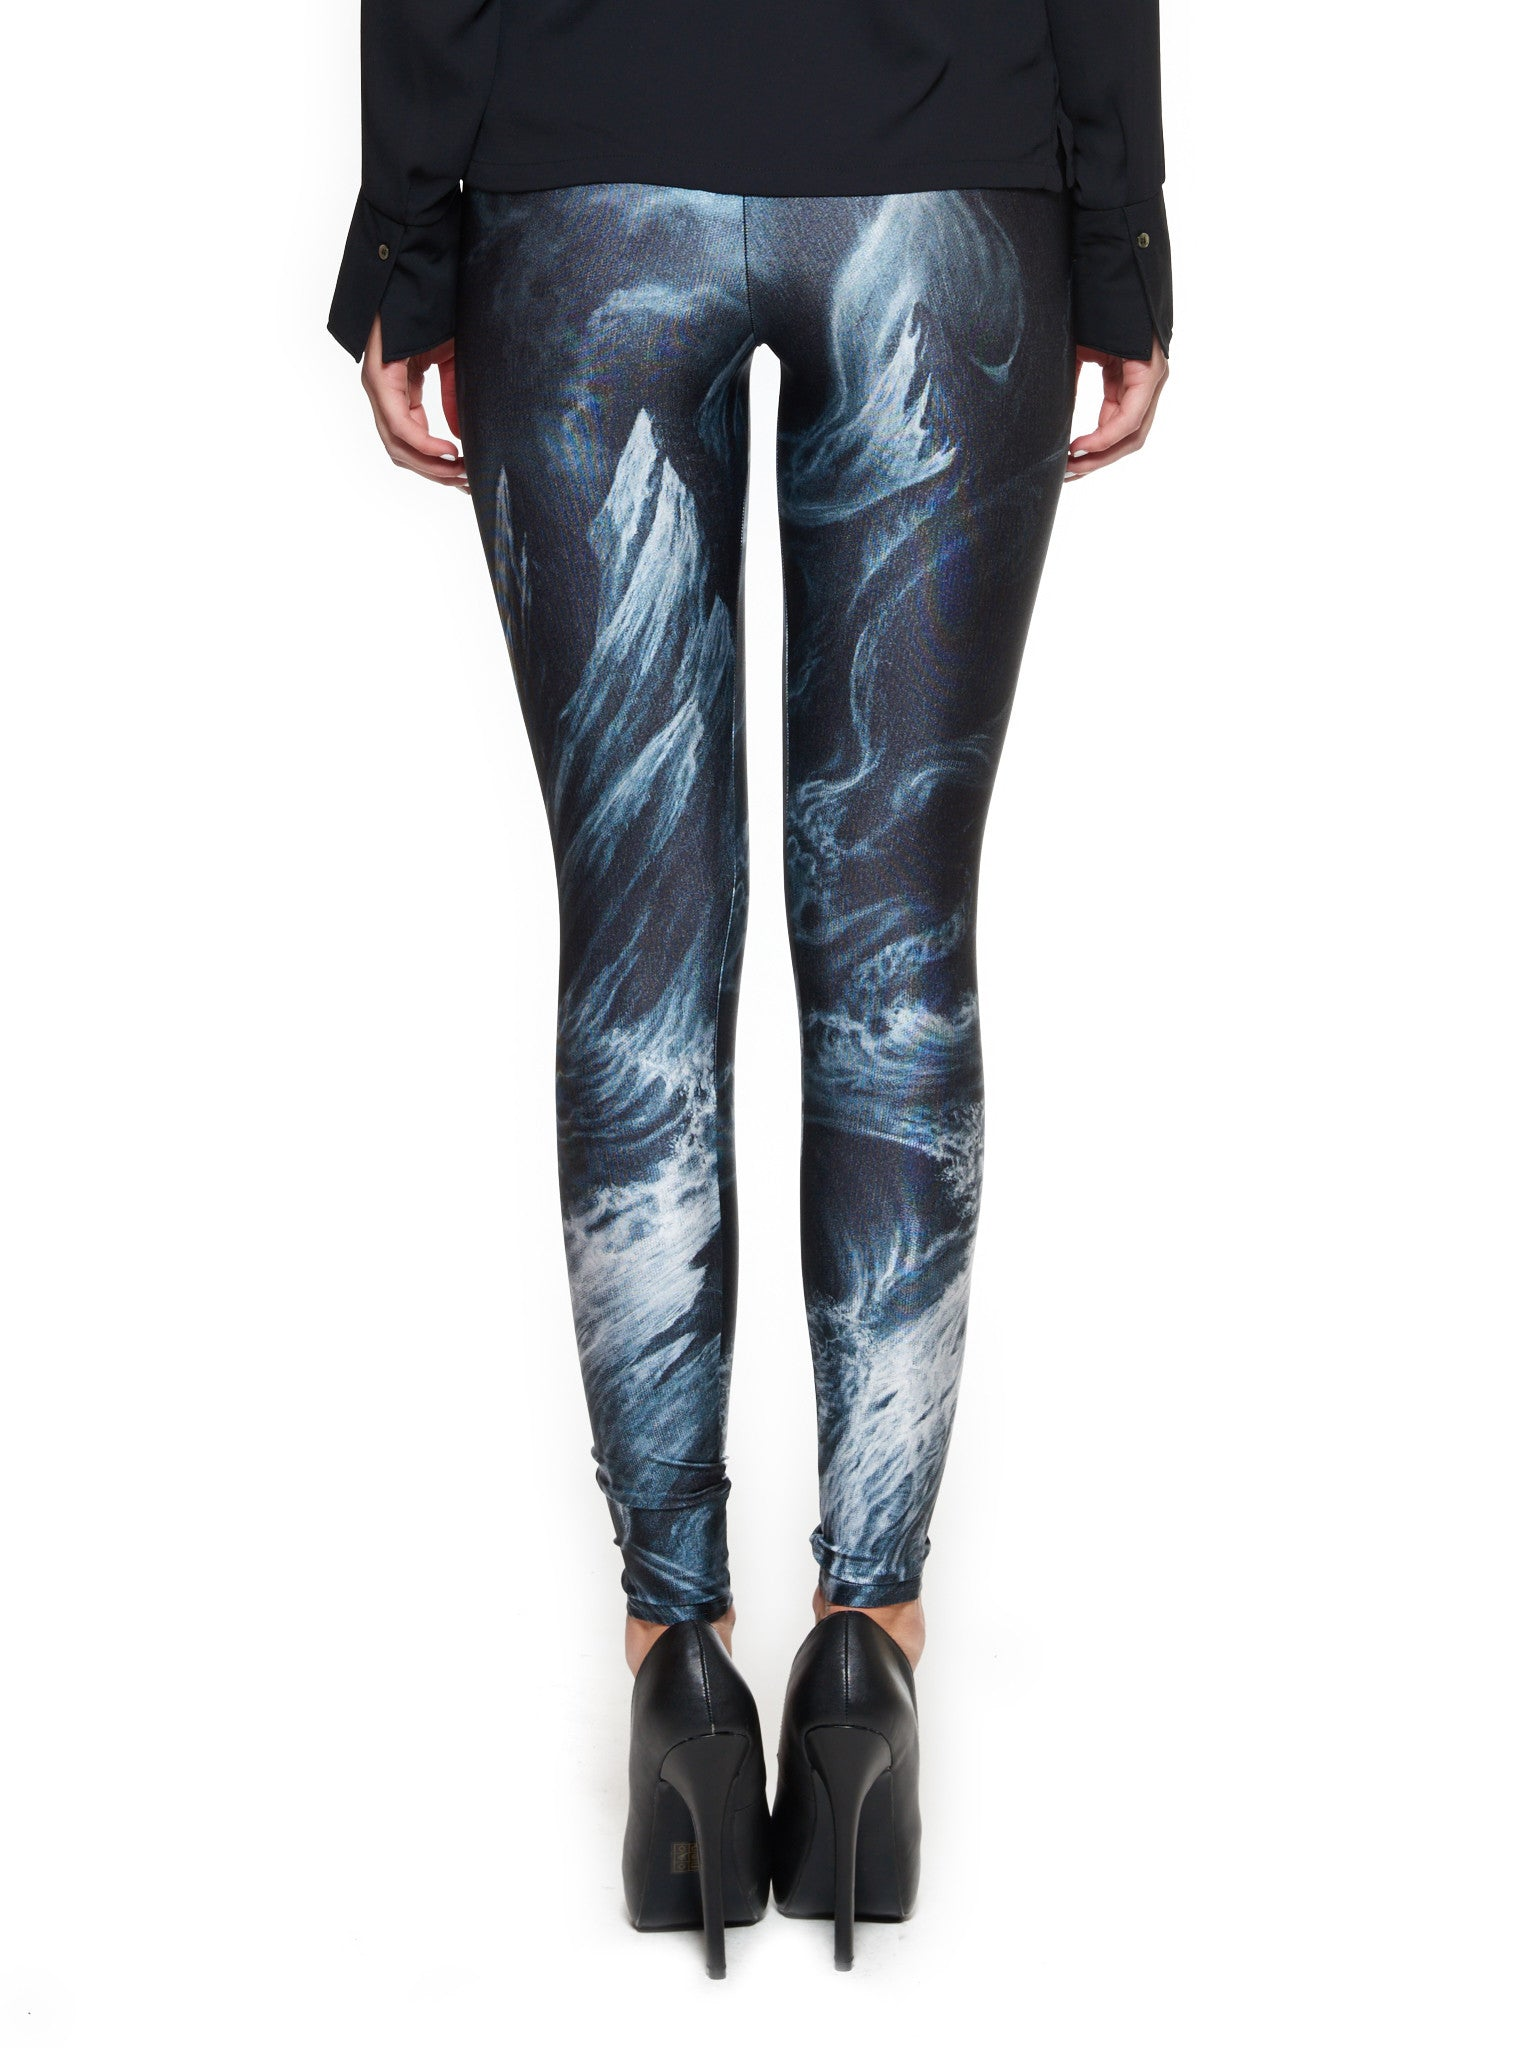 Lets Tear It All Down and Rebuild It With Meaning Queen West Leggings - Nuvango  - 3